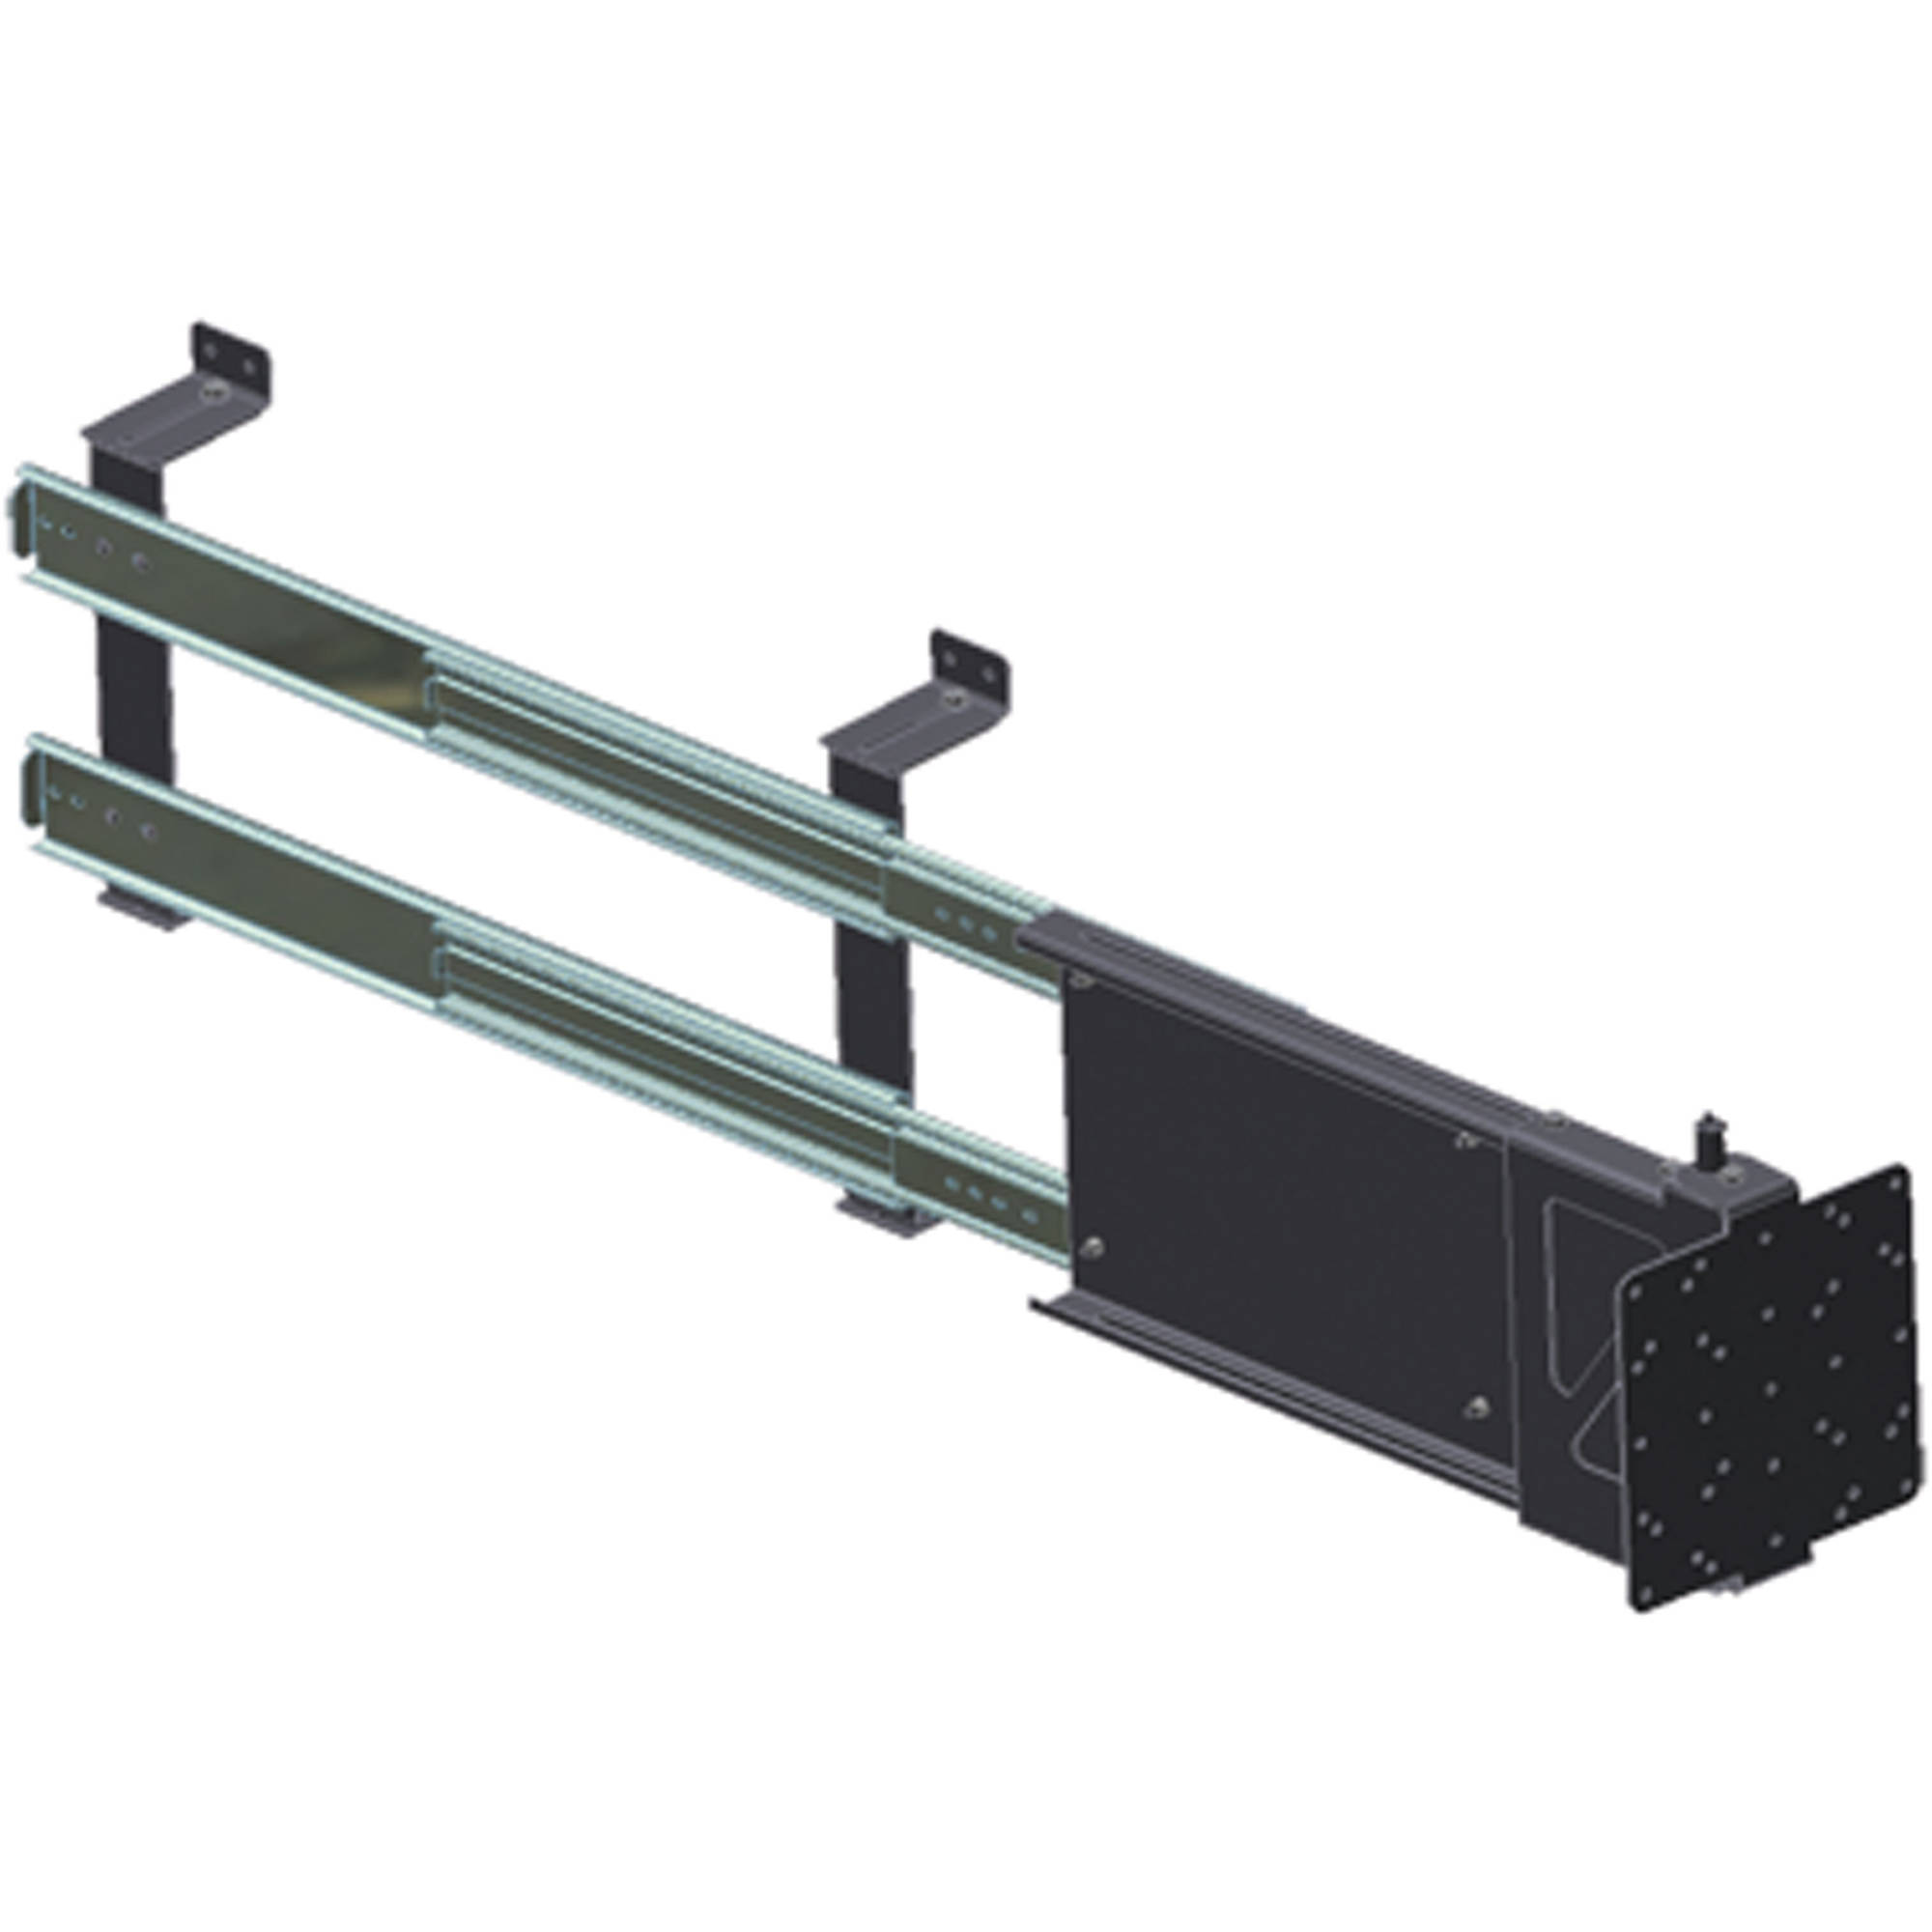 MORryde TV40-002H Adjustable Horizontal Sliding Mount for TV